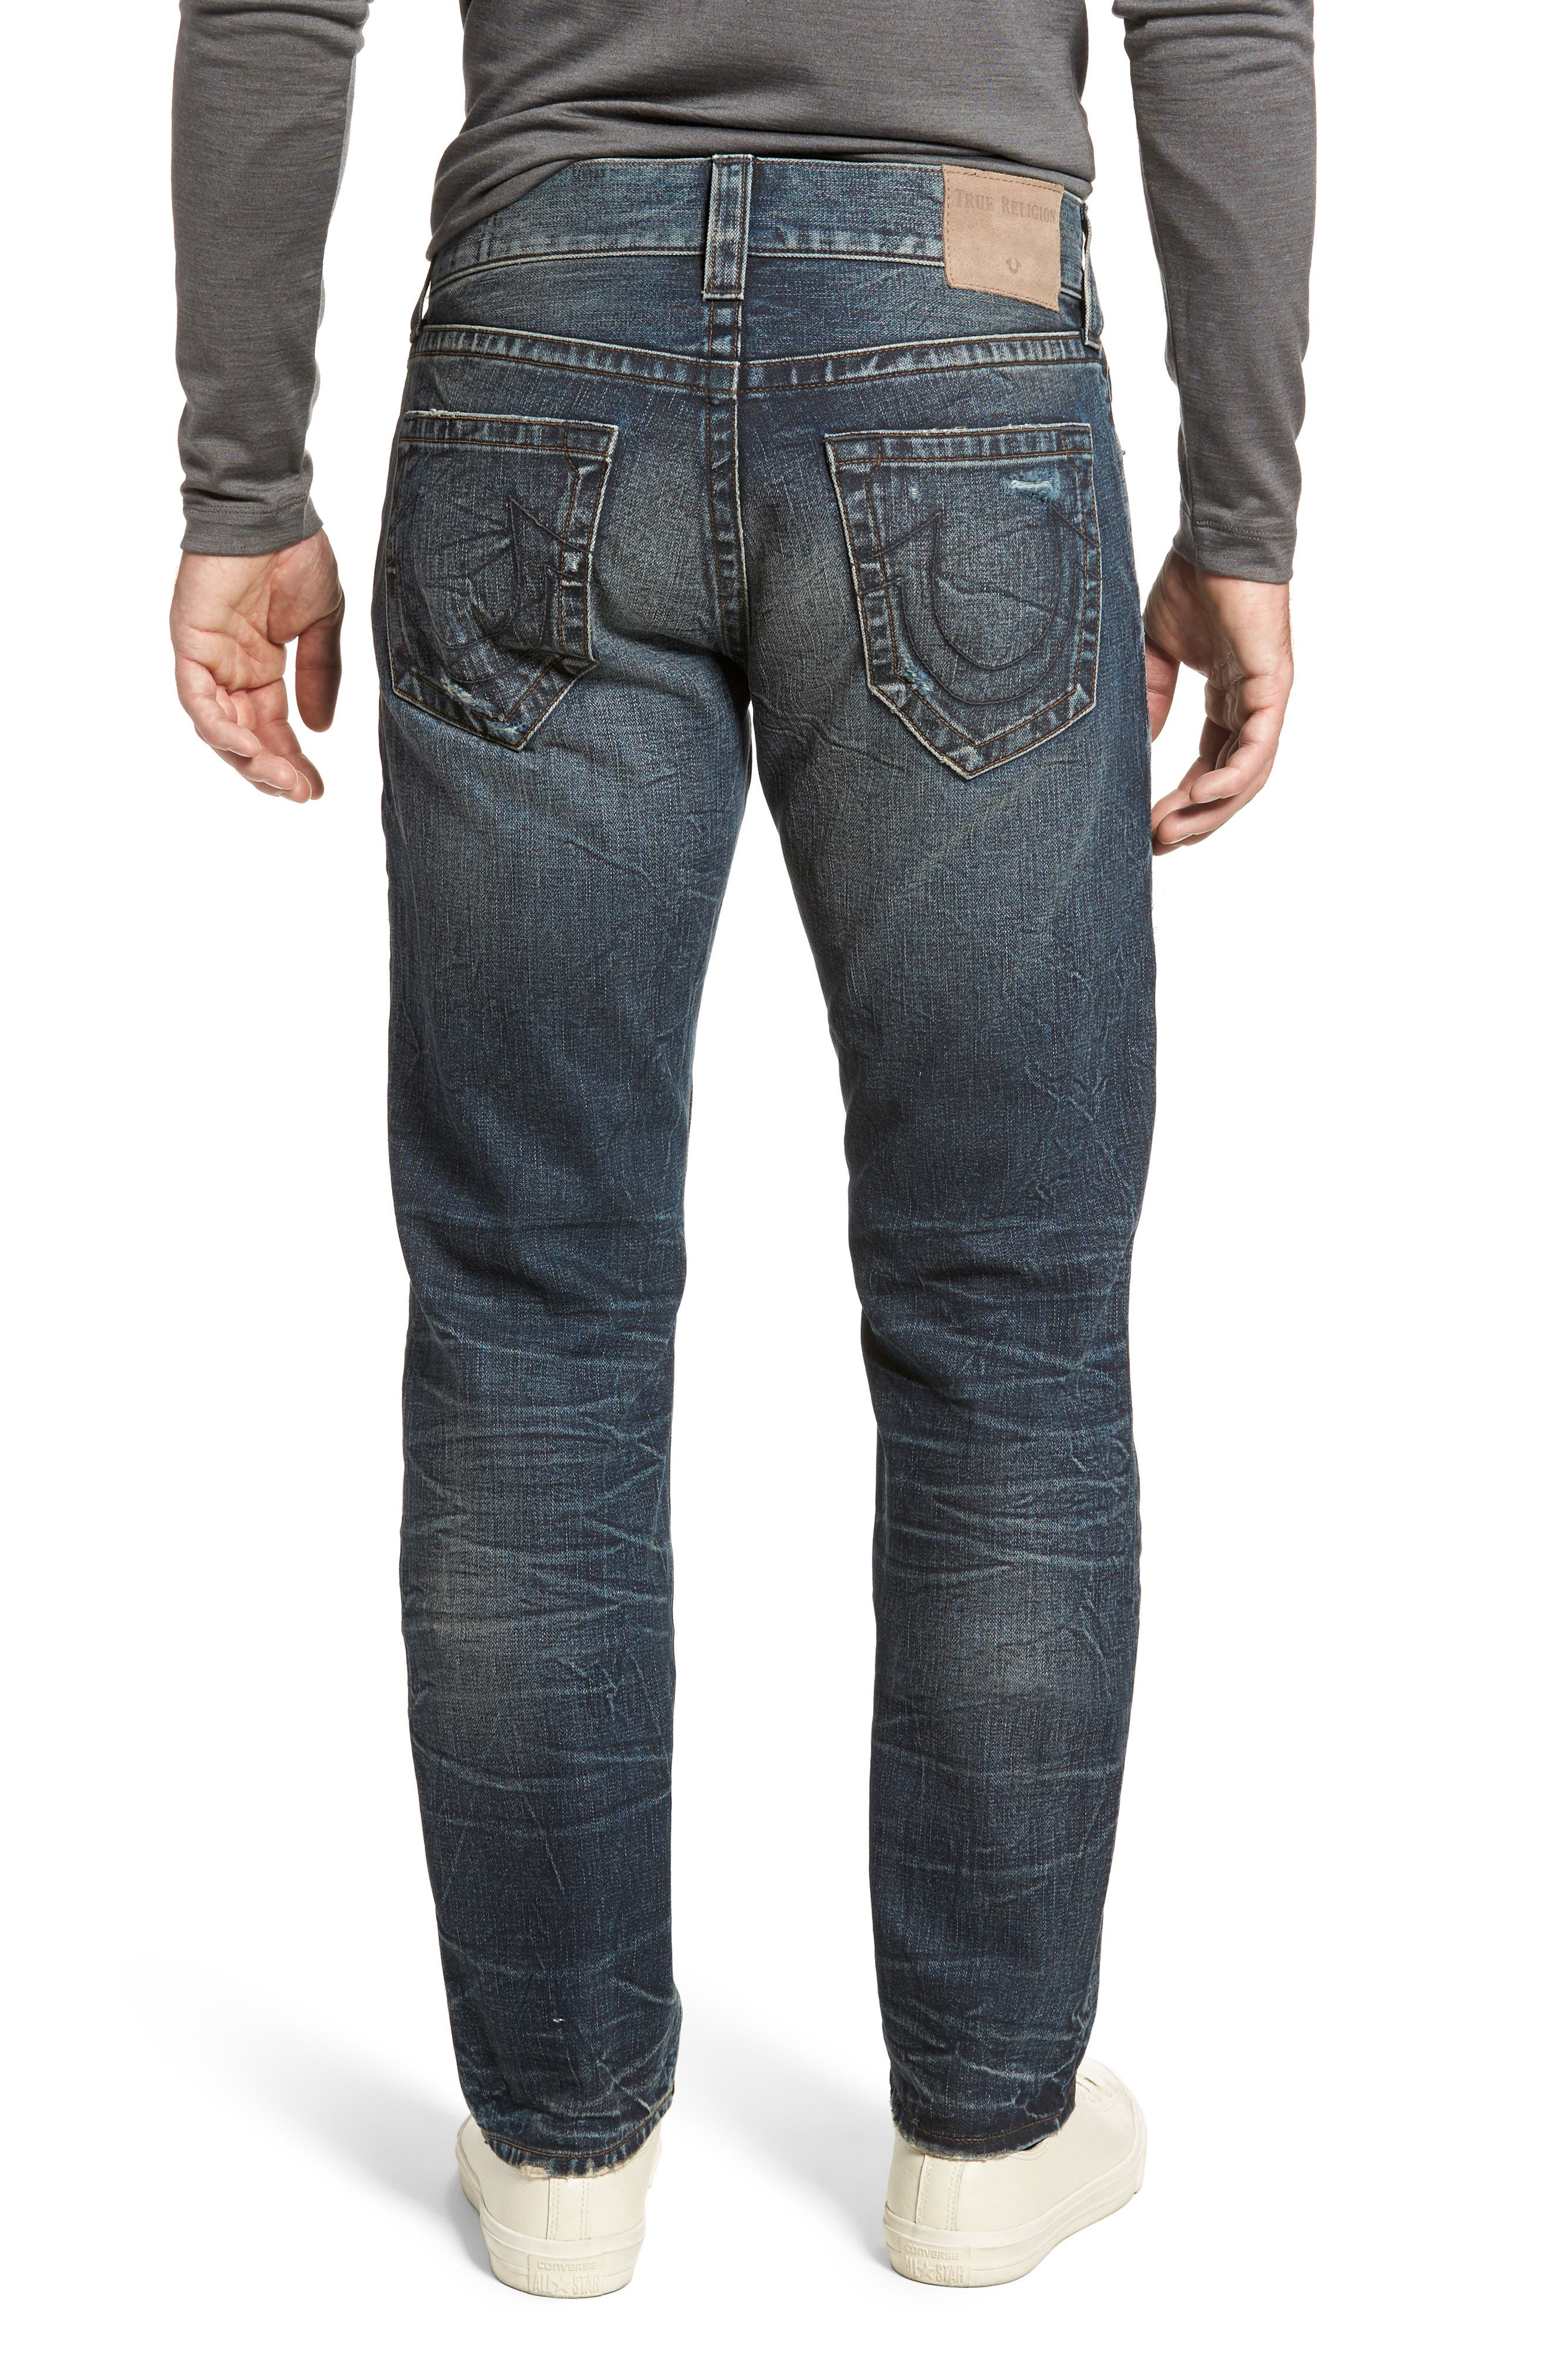 Geno Straight Fit Jeans,                             Alternate thumbnail 2, color,                             Patched Rider